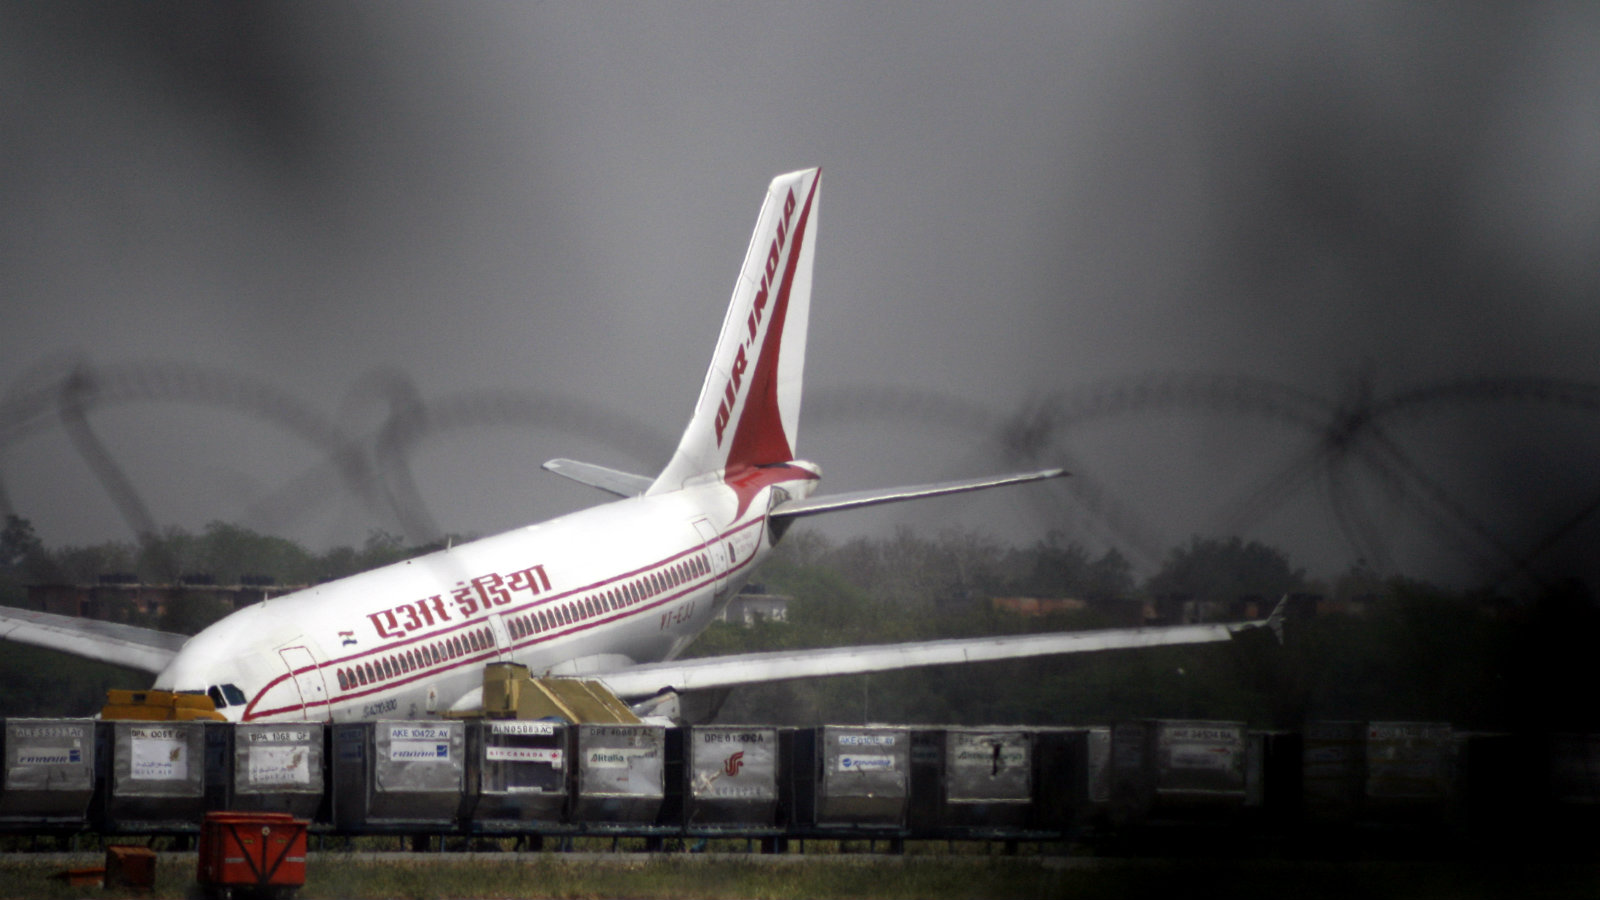 An Air India Airbus A310 is seen after it made an emergency landing at the international airport in New Delhi April 9, 2007. Two Air India planes made emergency landings on Monday at New Delhi's international airport, with the nose of one aircraft later hitting the ground as its front undercarriage collapsed while being towed away.